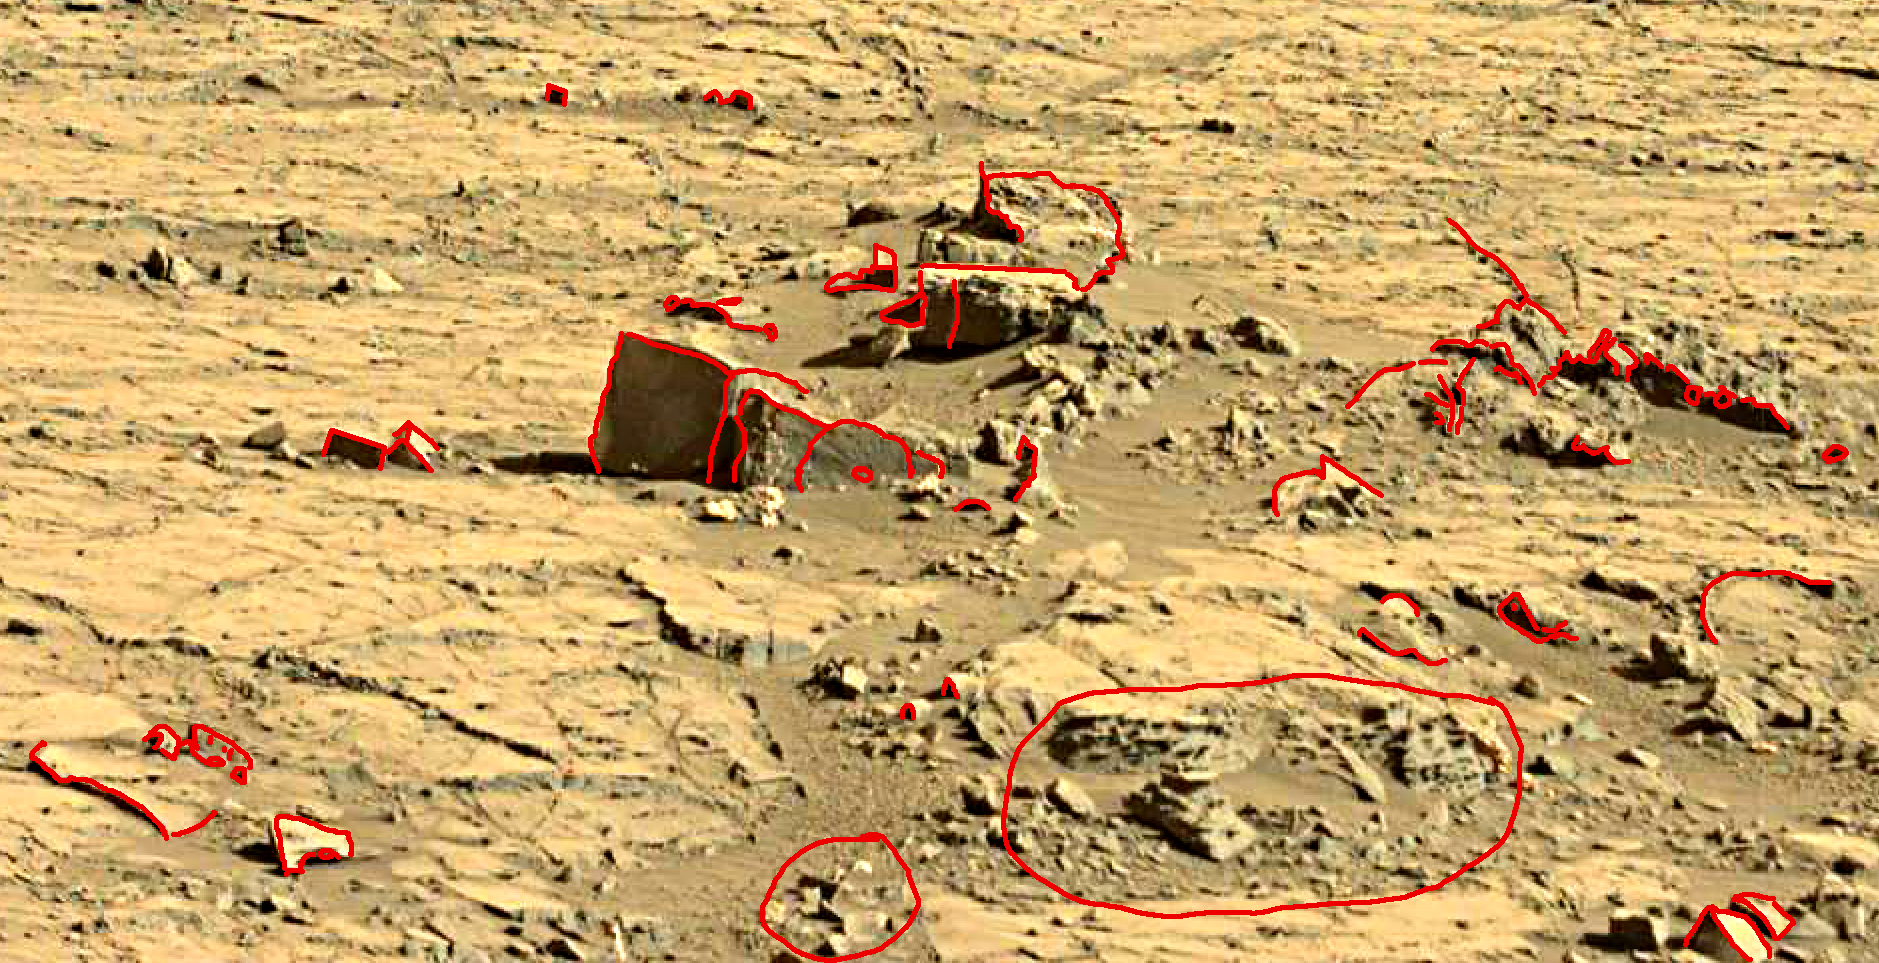 Mars Sol 1267 Curiosity – 1267ML0059330000504321E01 | Was ...